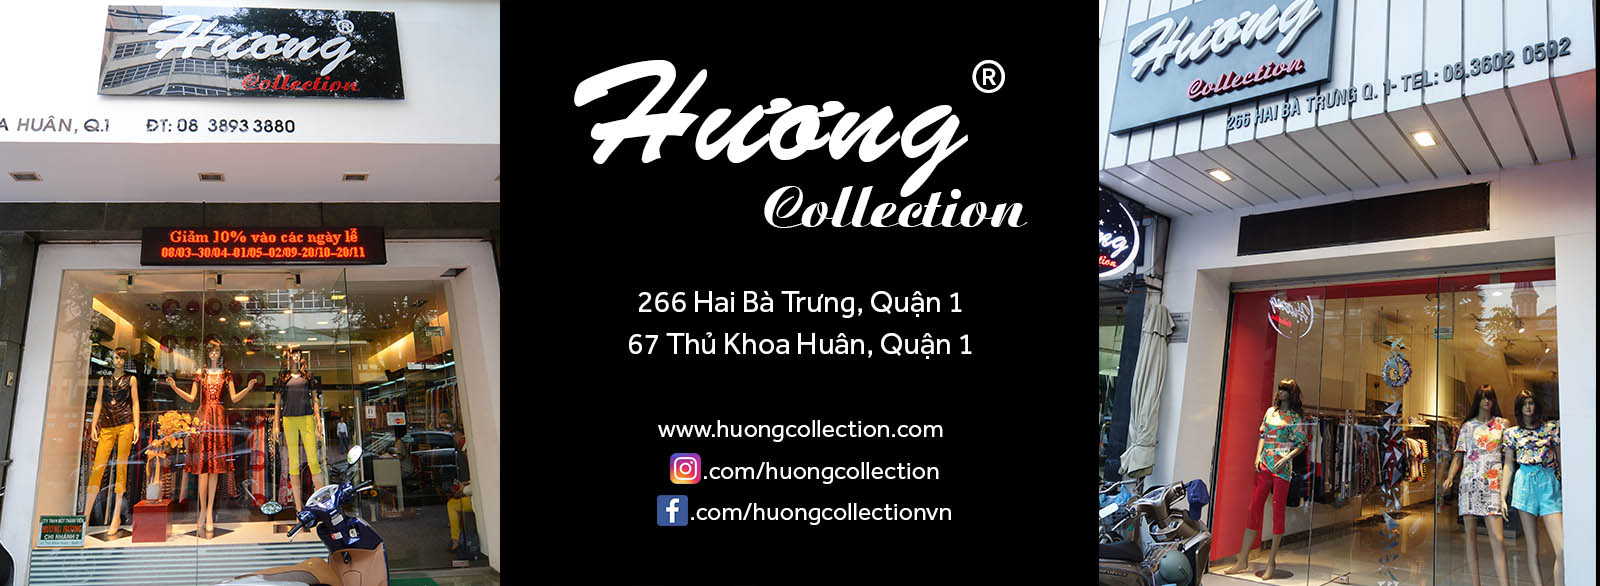 huongcollection-huongcollection.com-banner1